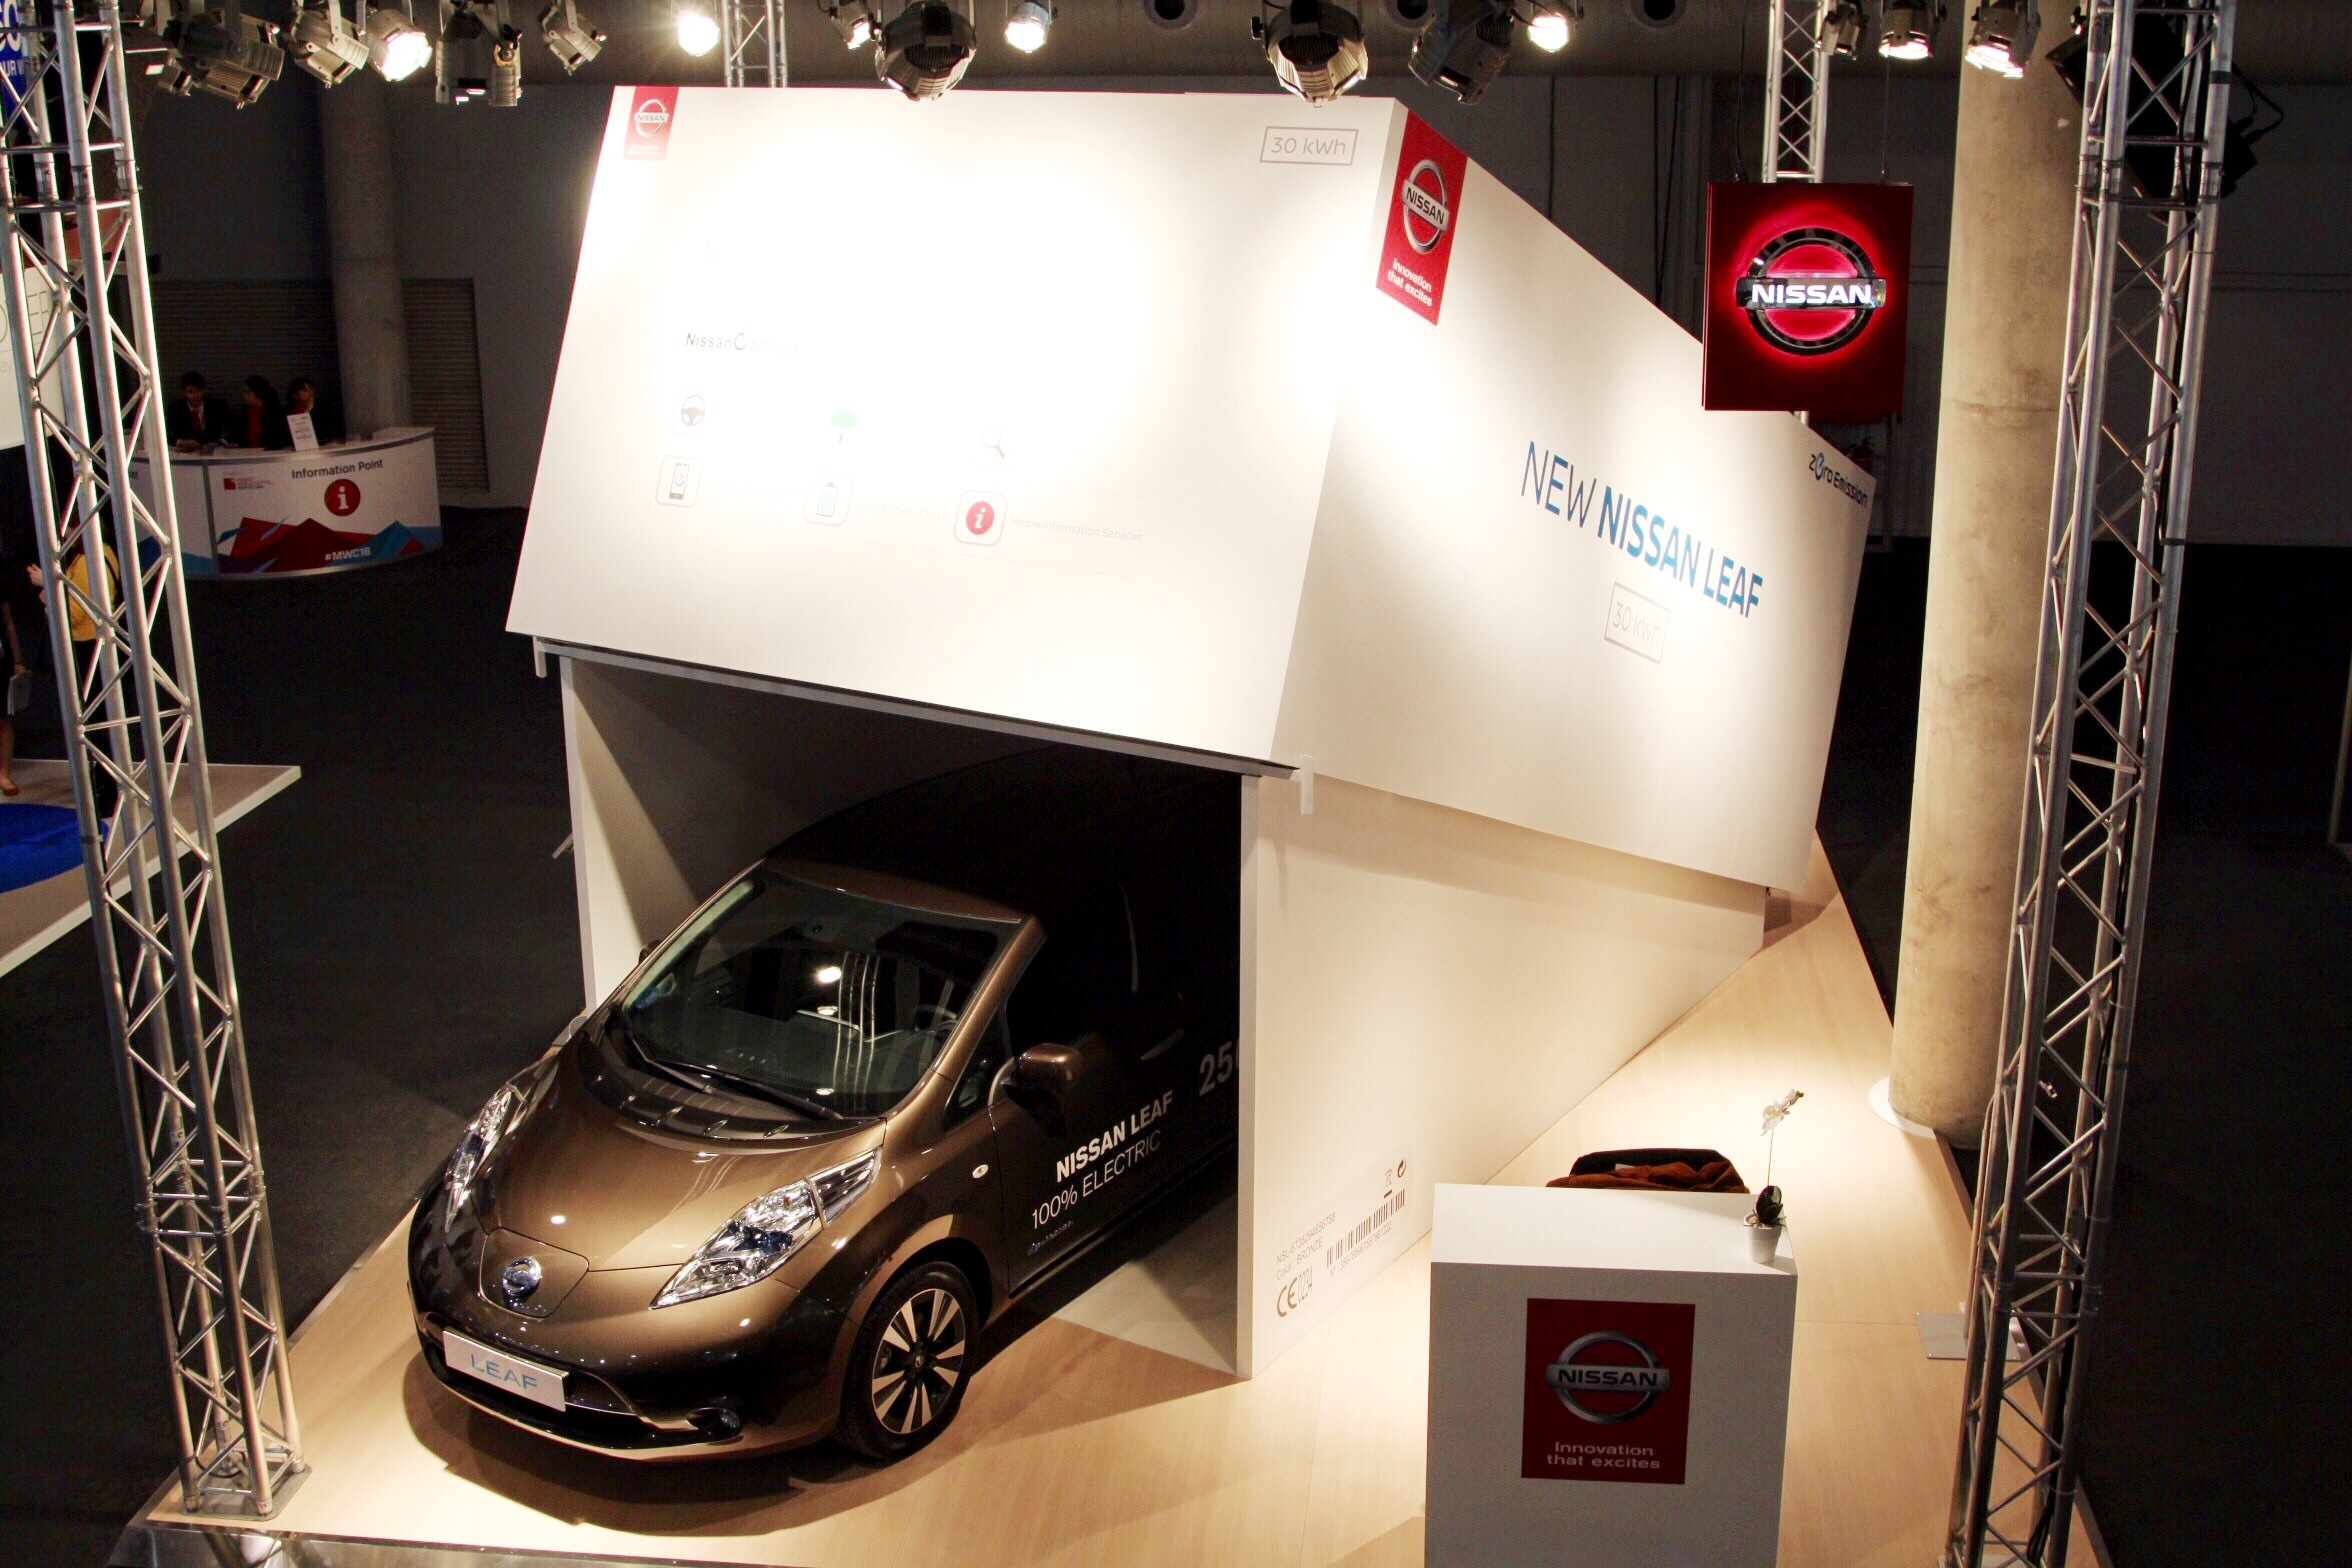 Nissan 'unboxes' its new LEAF at the Mobile World Congress in Barcelona.